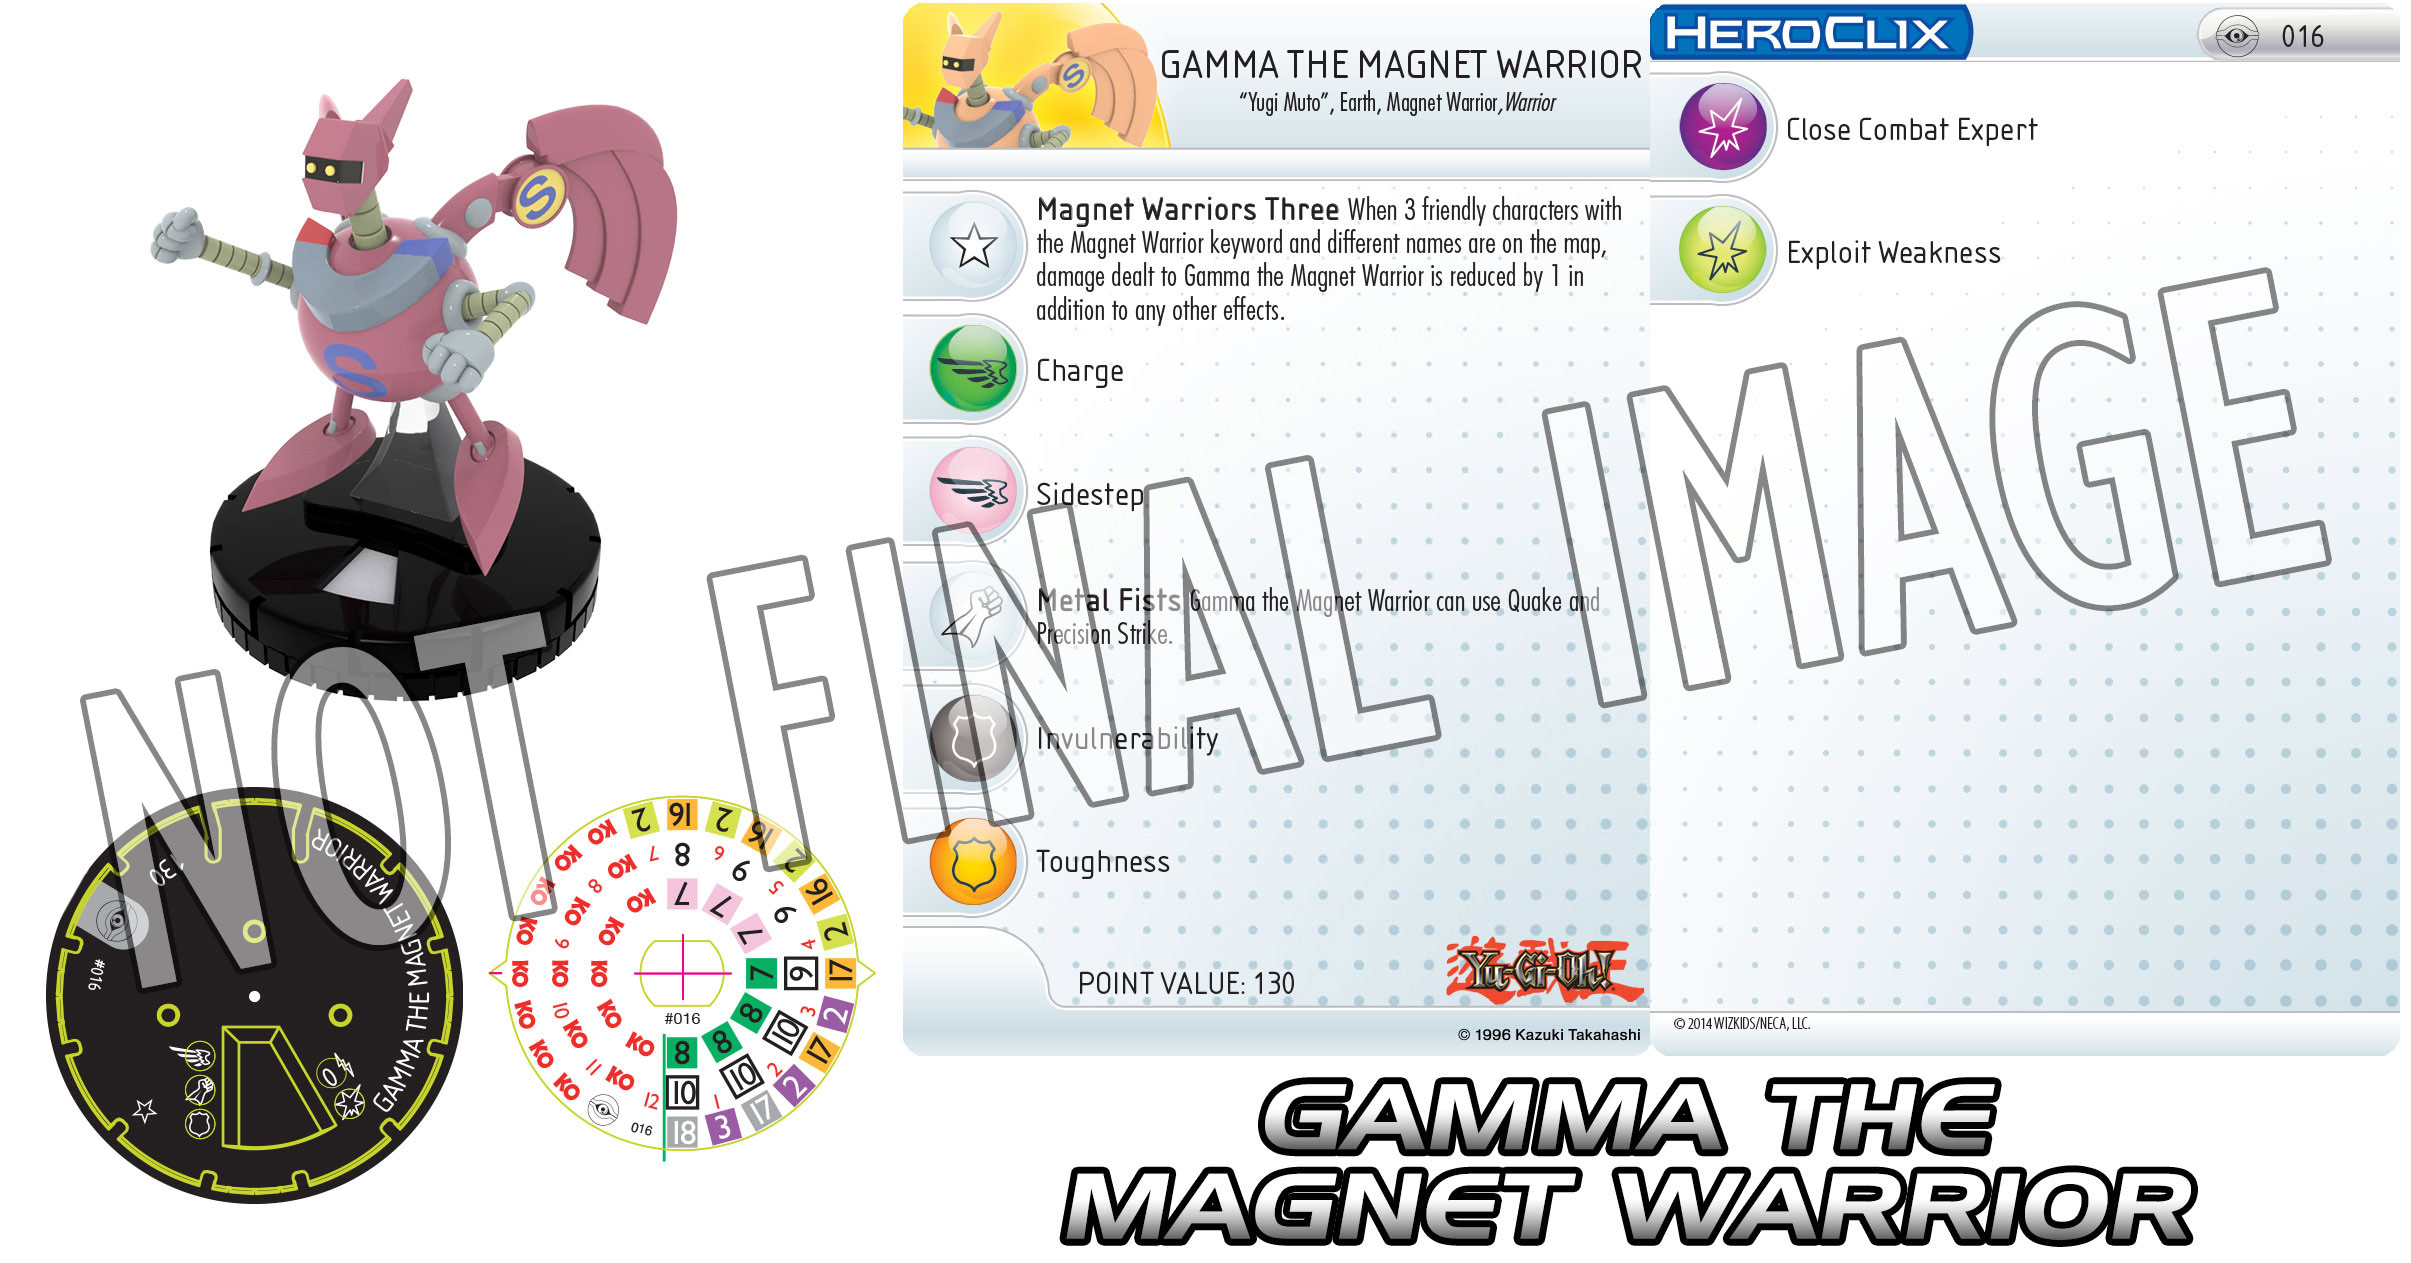 gamma-the-magnet-warrior